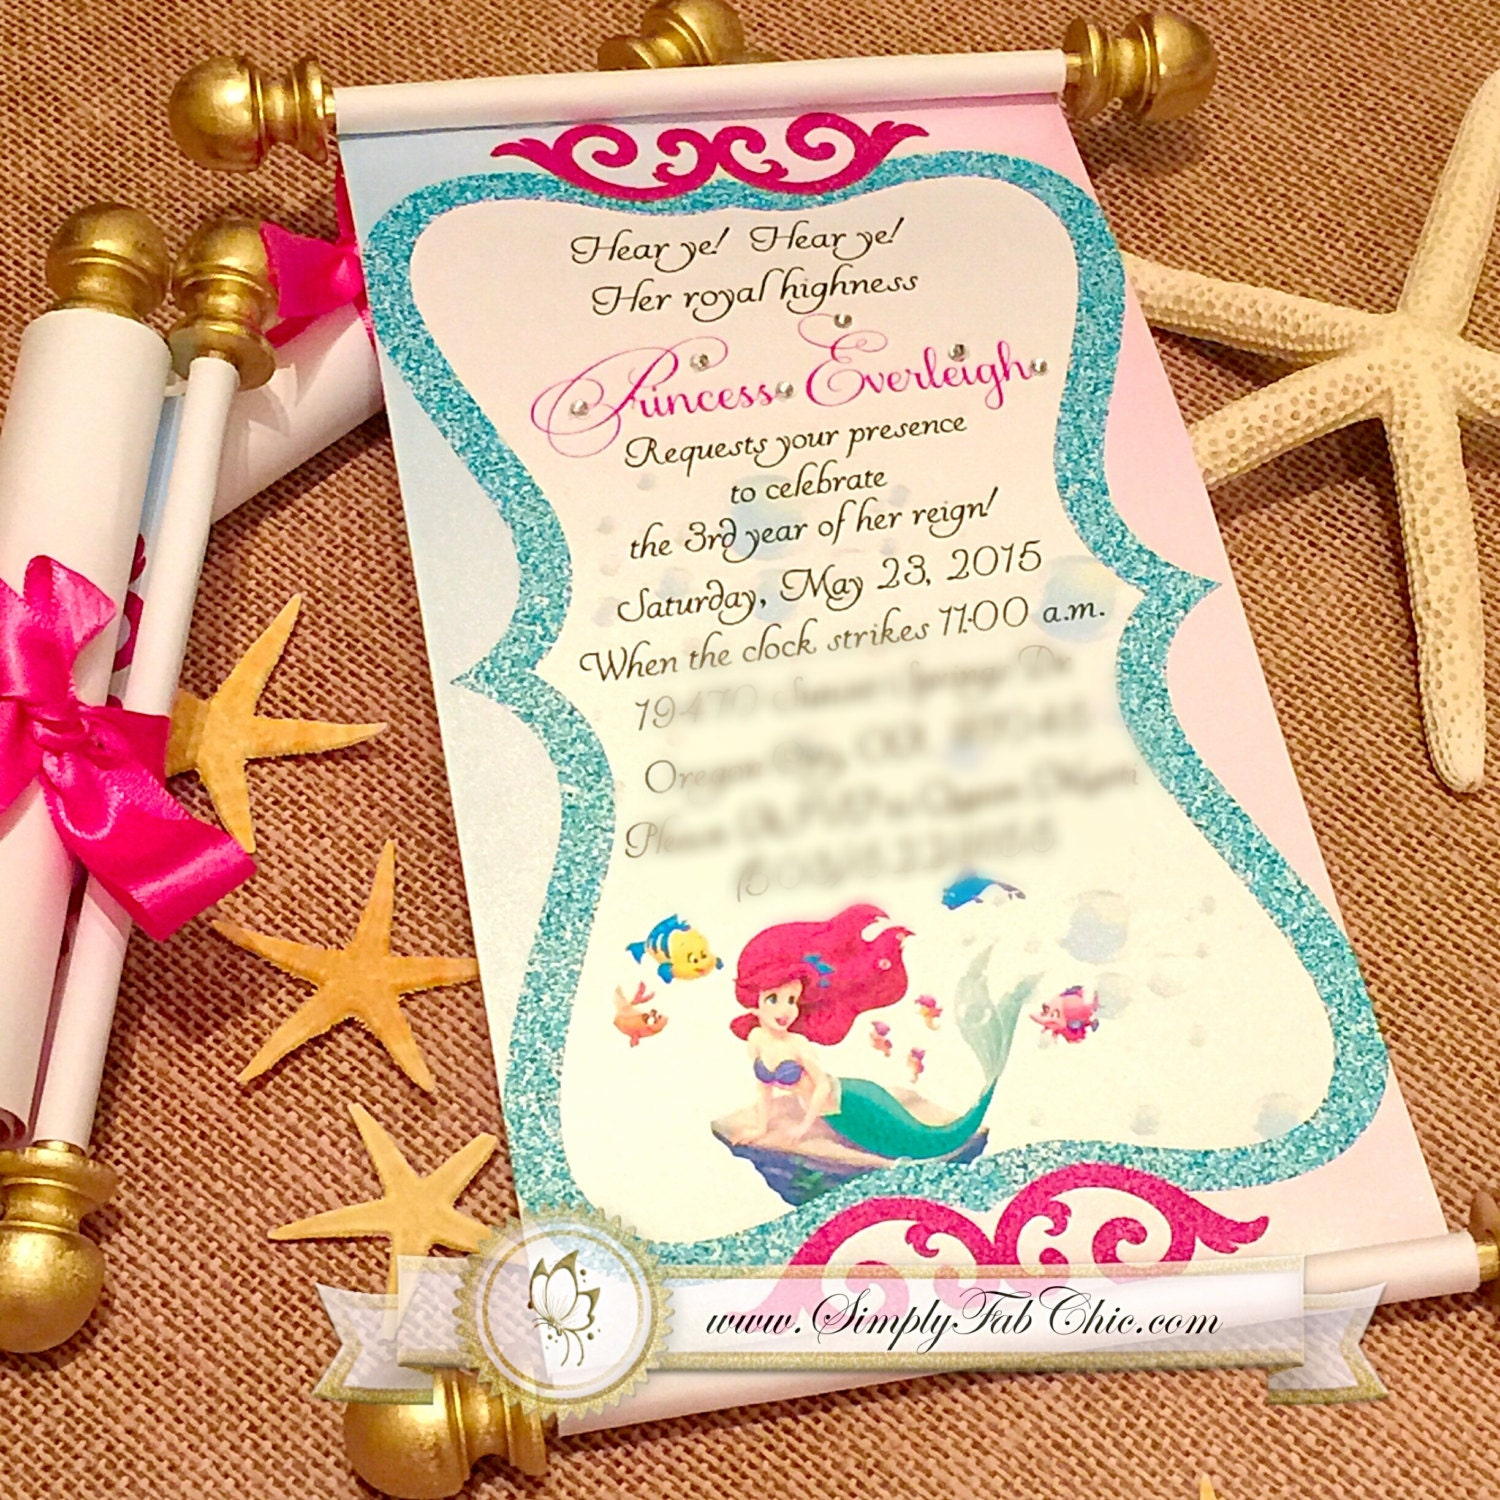 Gut gemocht Petite sirène Royal Disney Princesse Scroll Invitation DW71